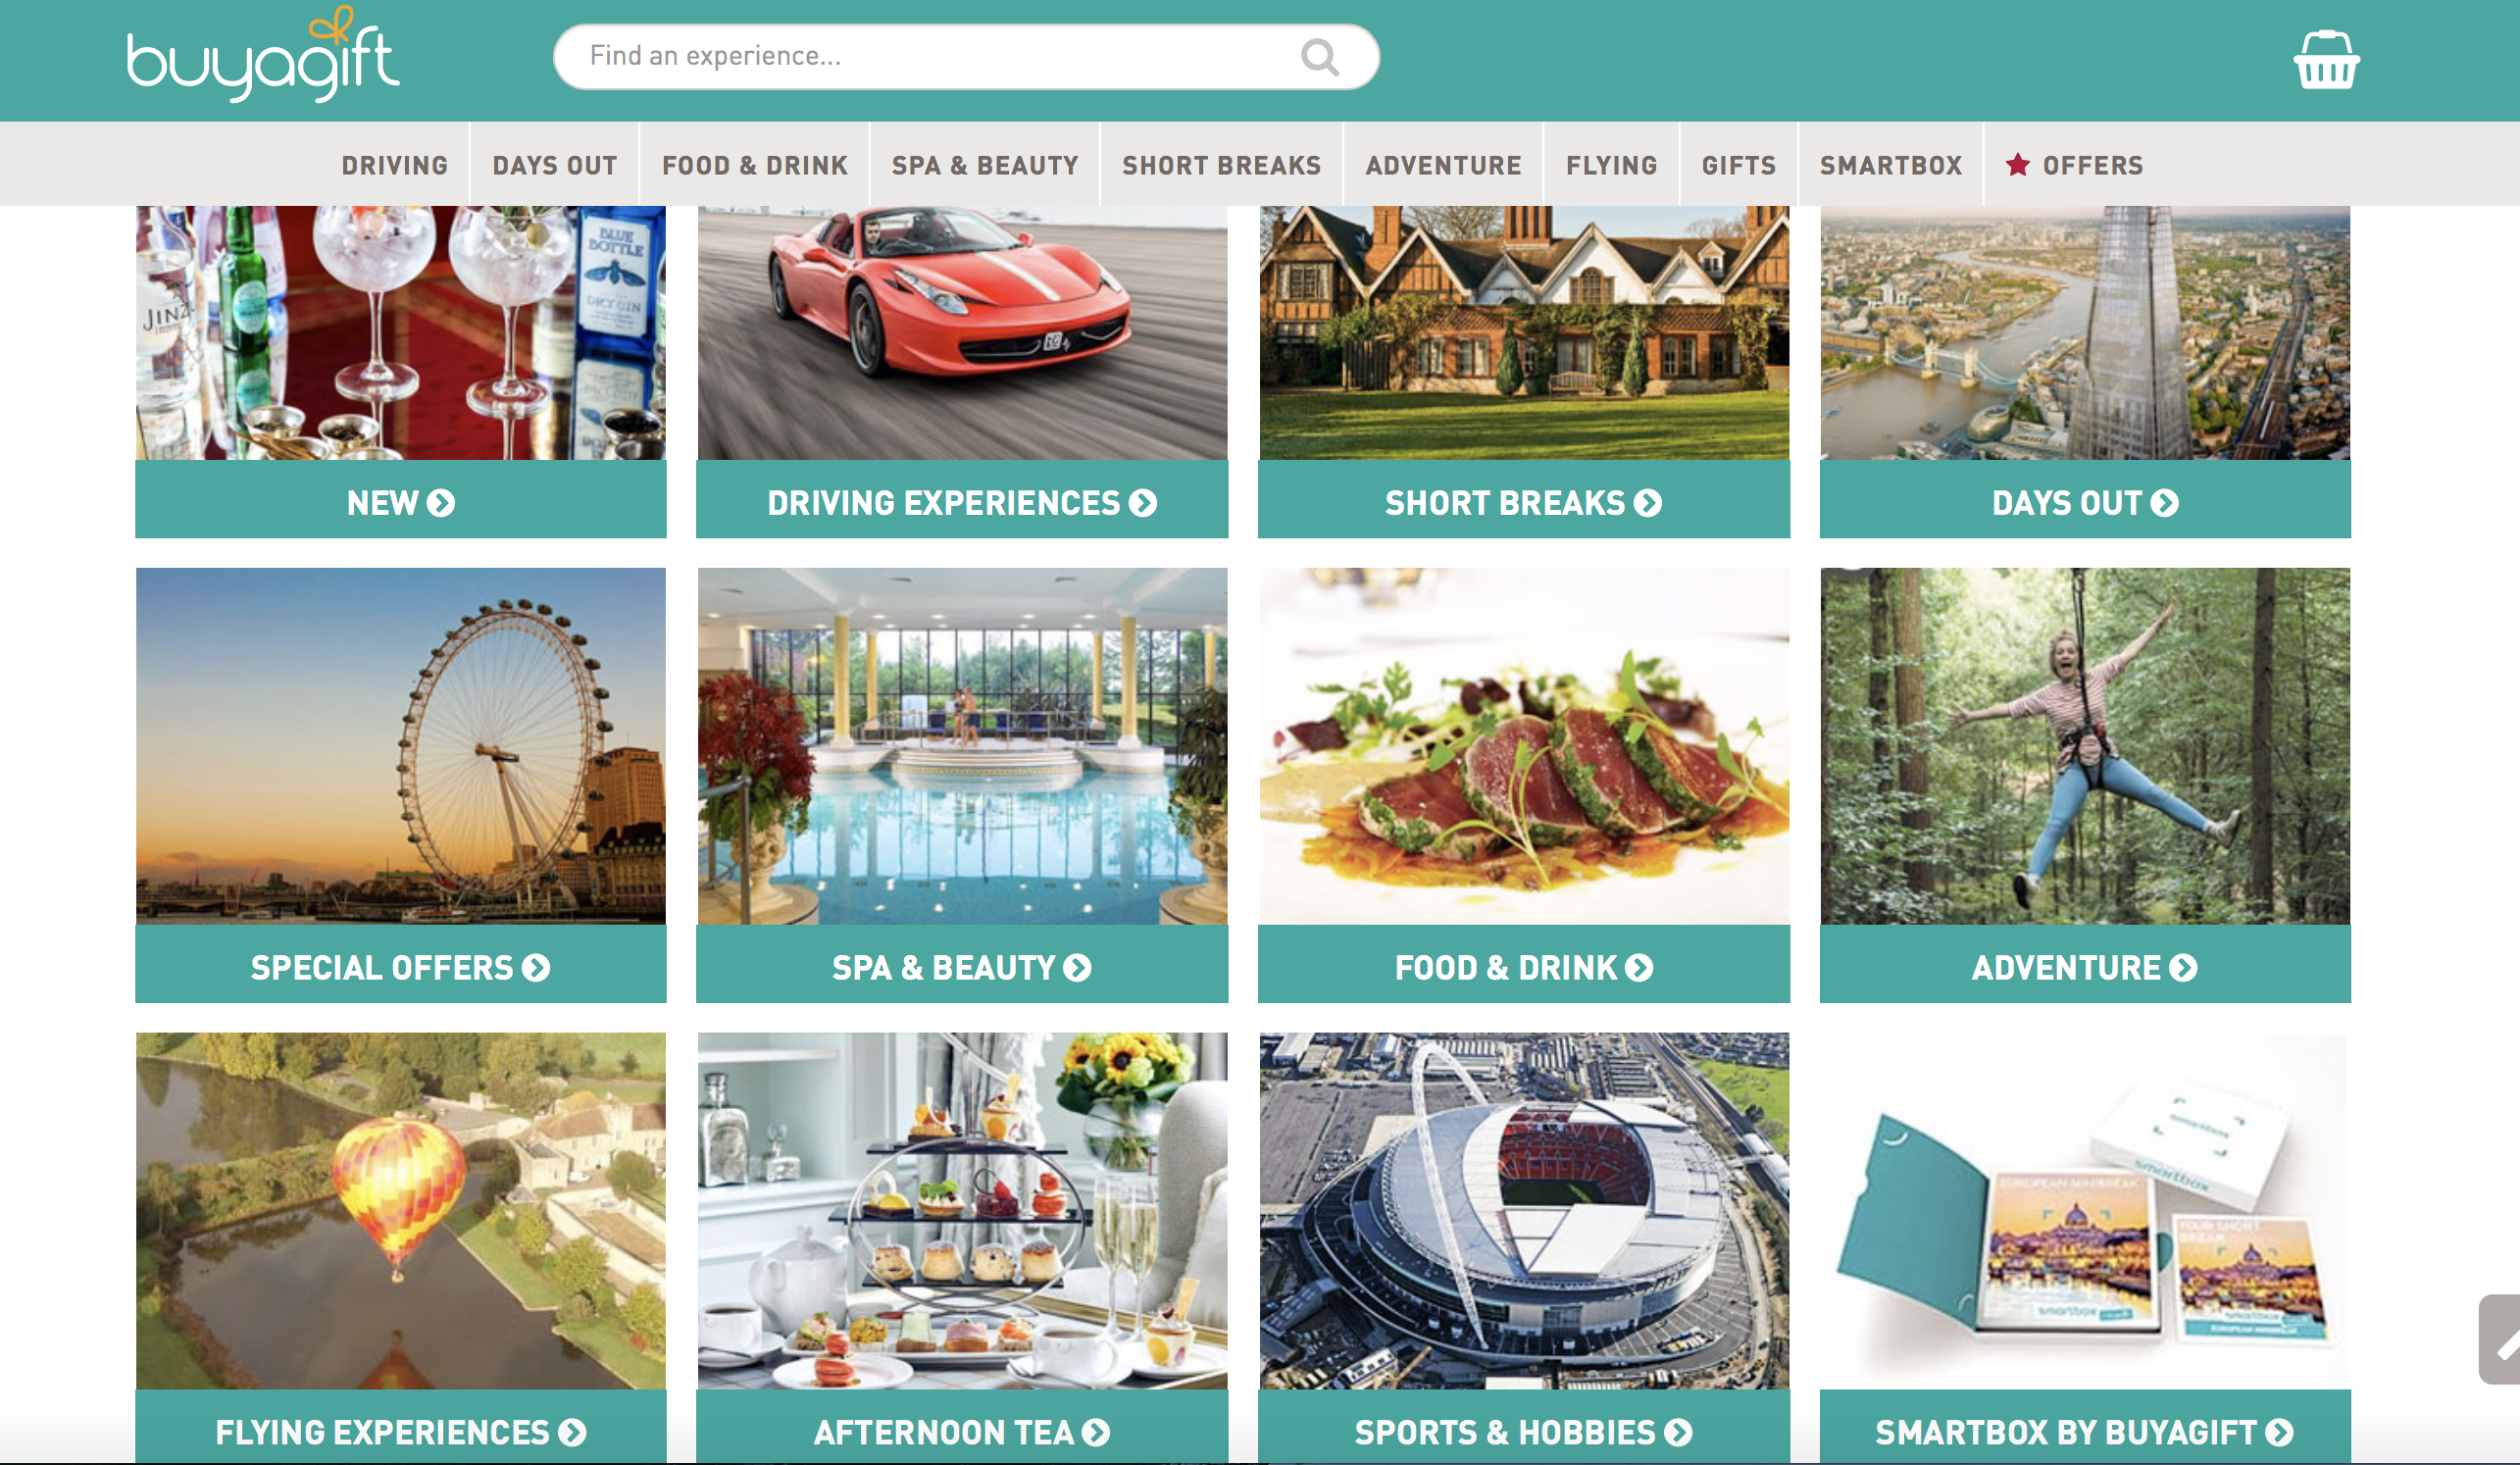 A screenshot of the buyagift website with all the categories displayed.